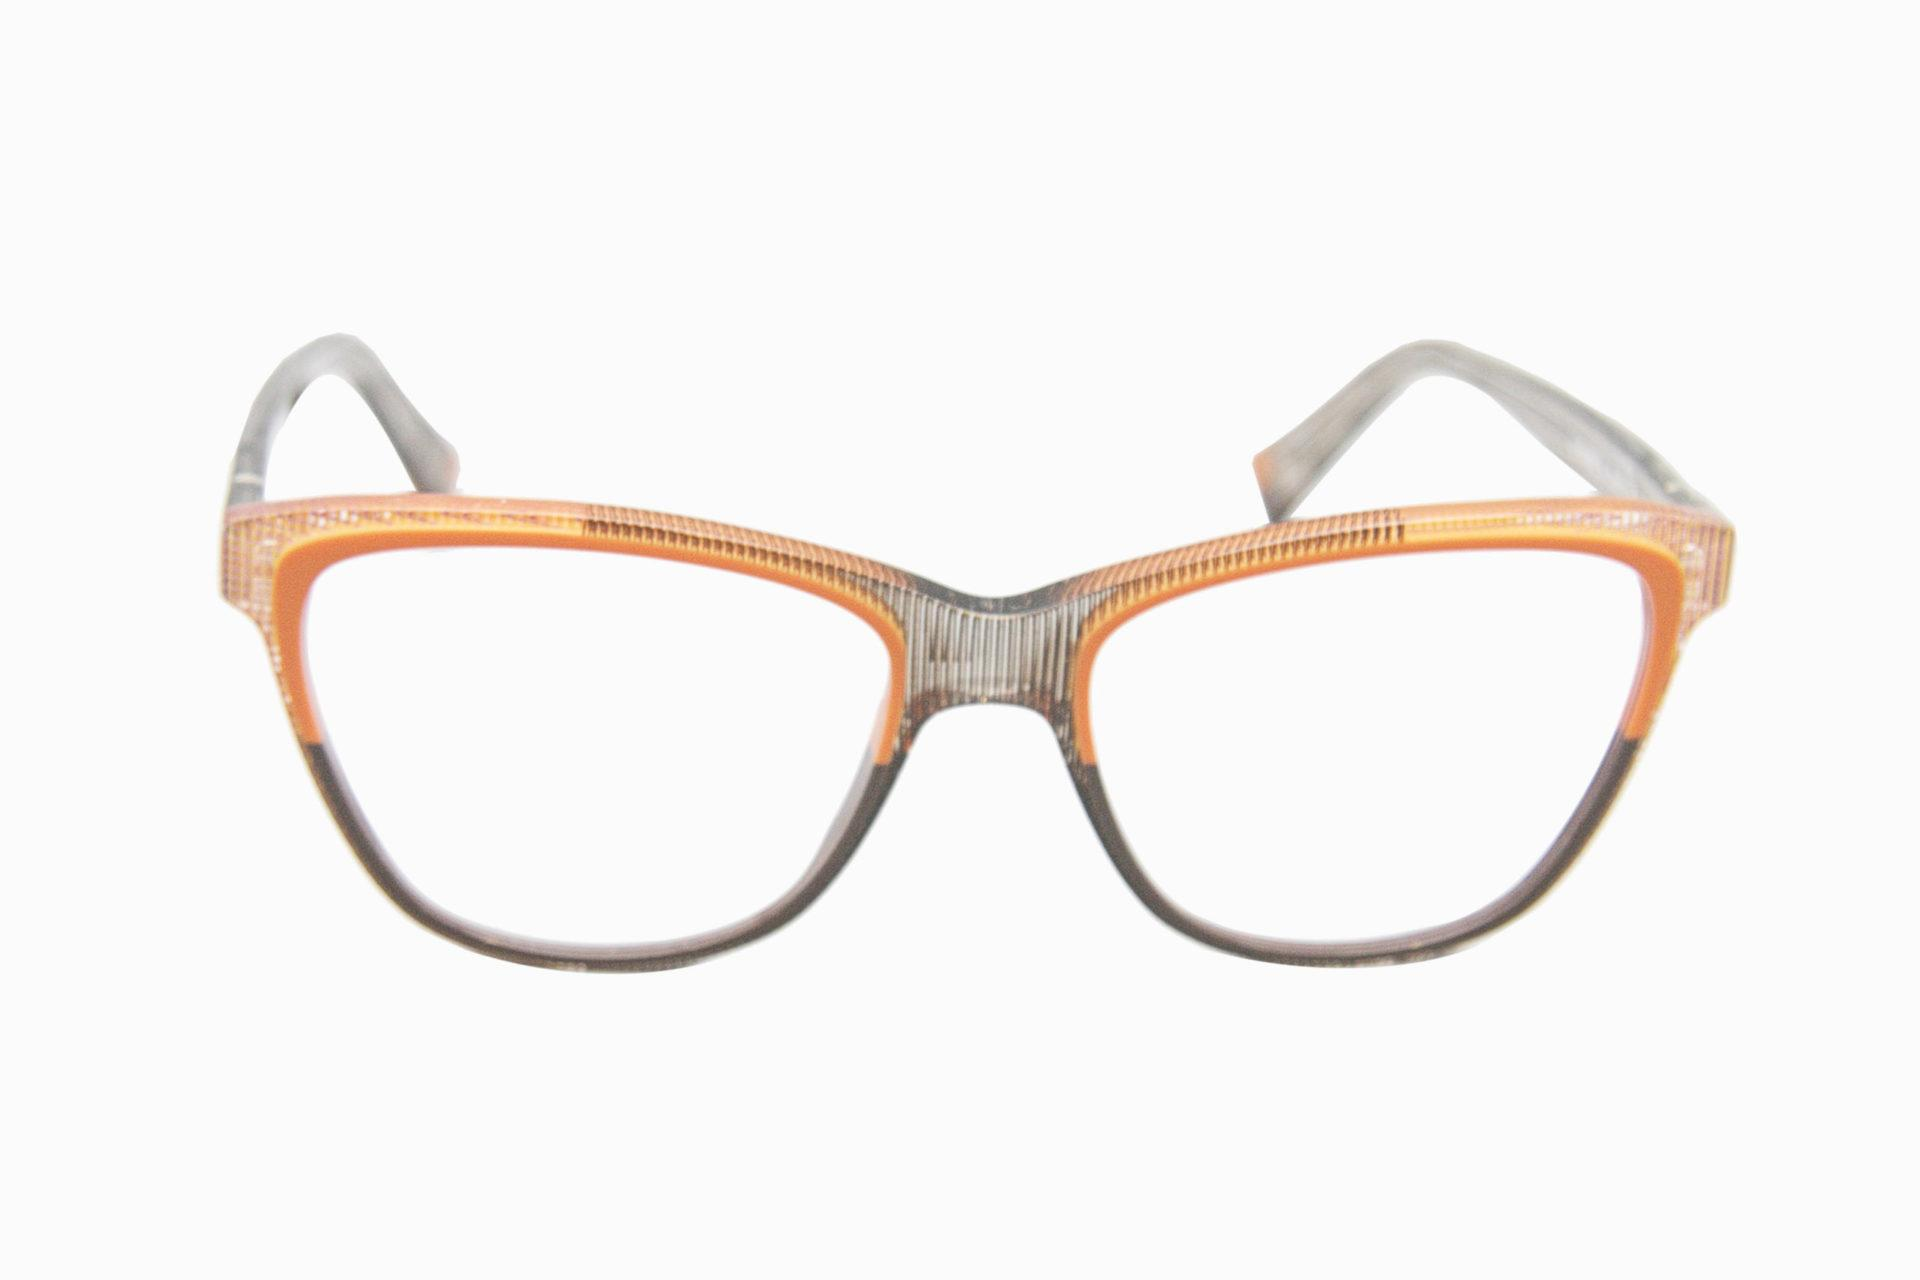 Lunette LAMRACA face orange grise